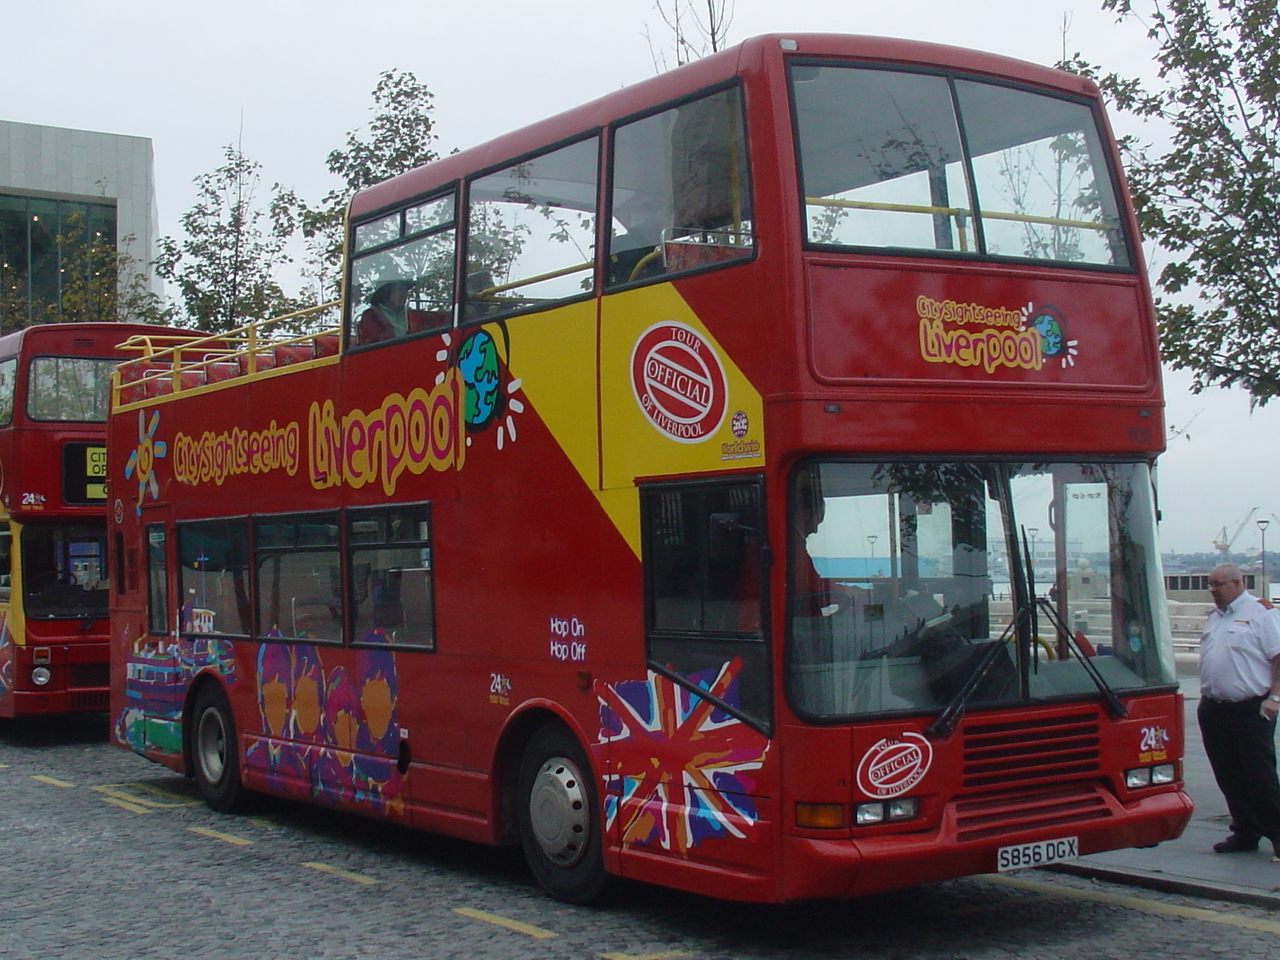 Liverpool Tour From London